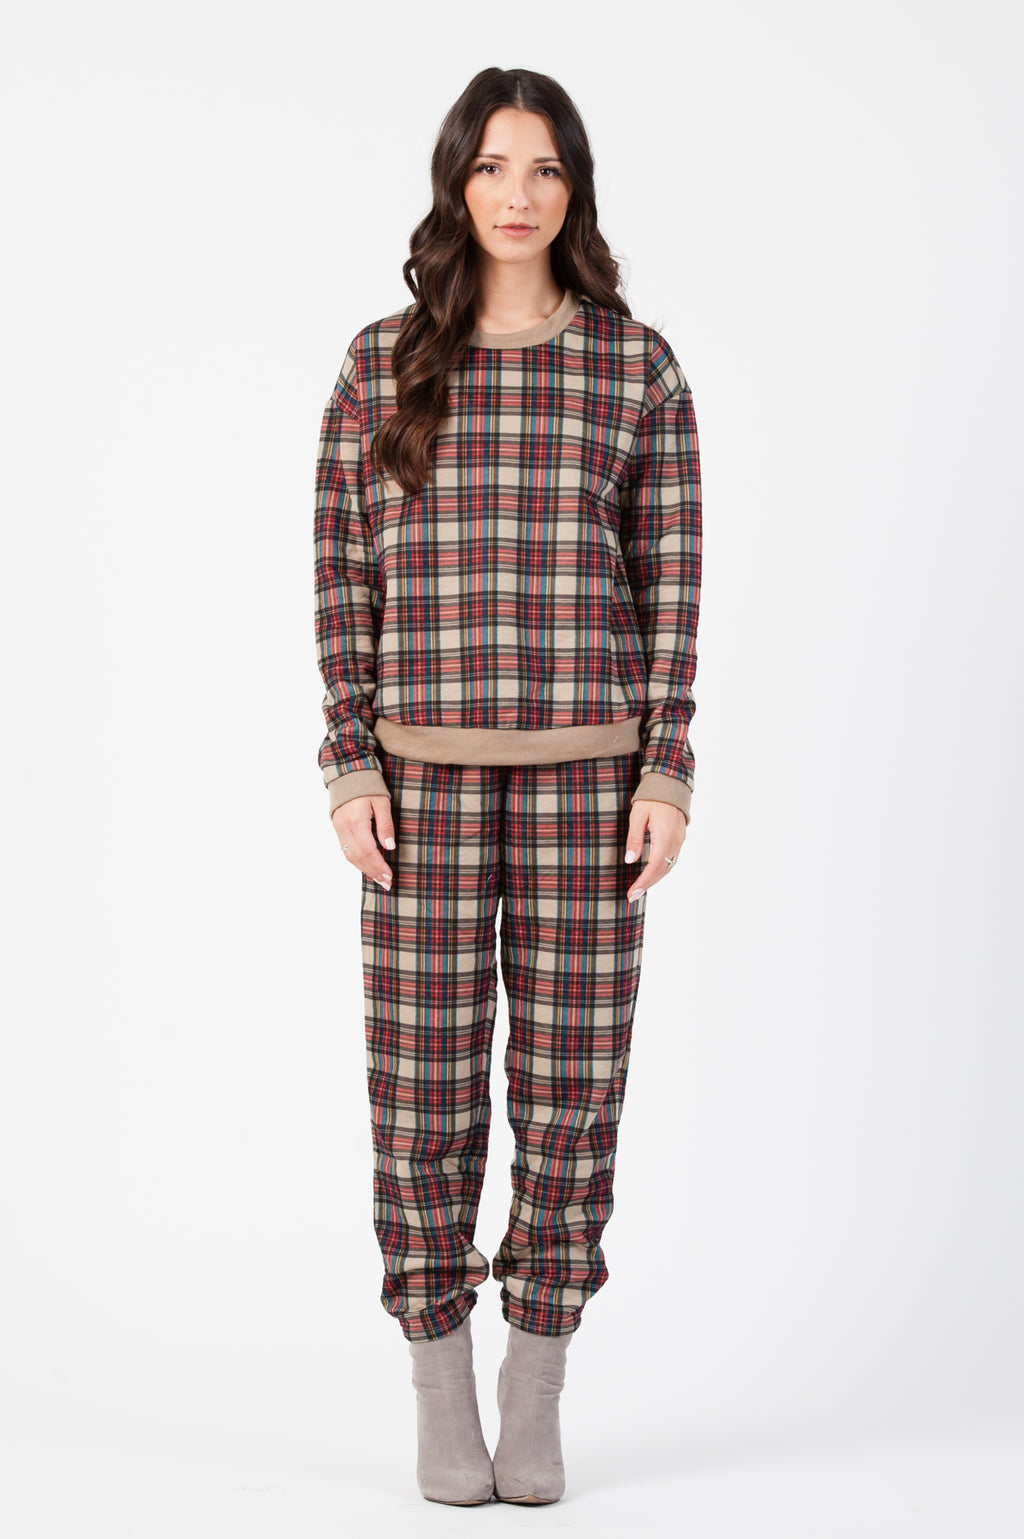 HOLIDAY PLAID SWEATSHIRT| RED/TAN PLAID